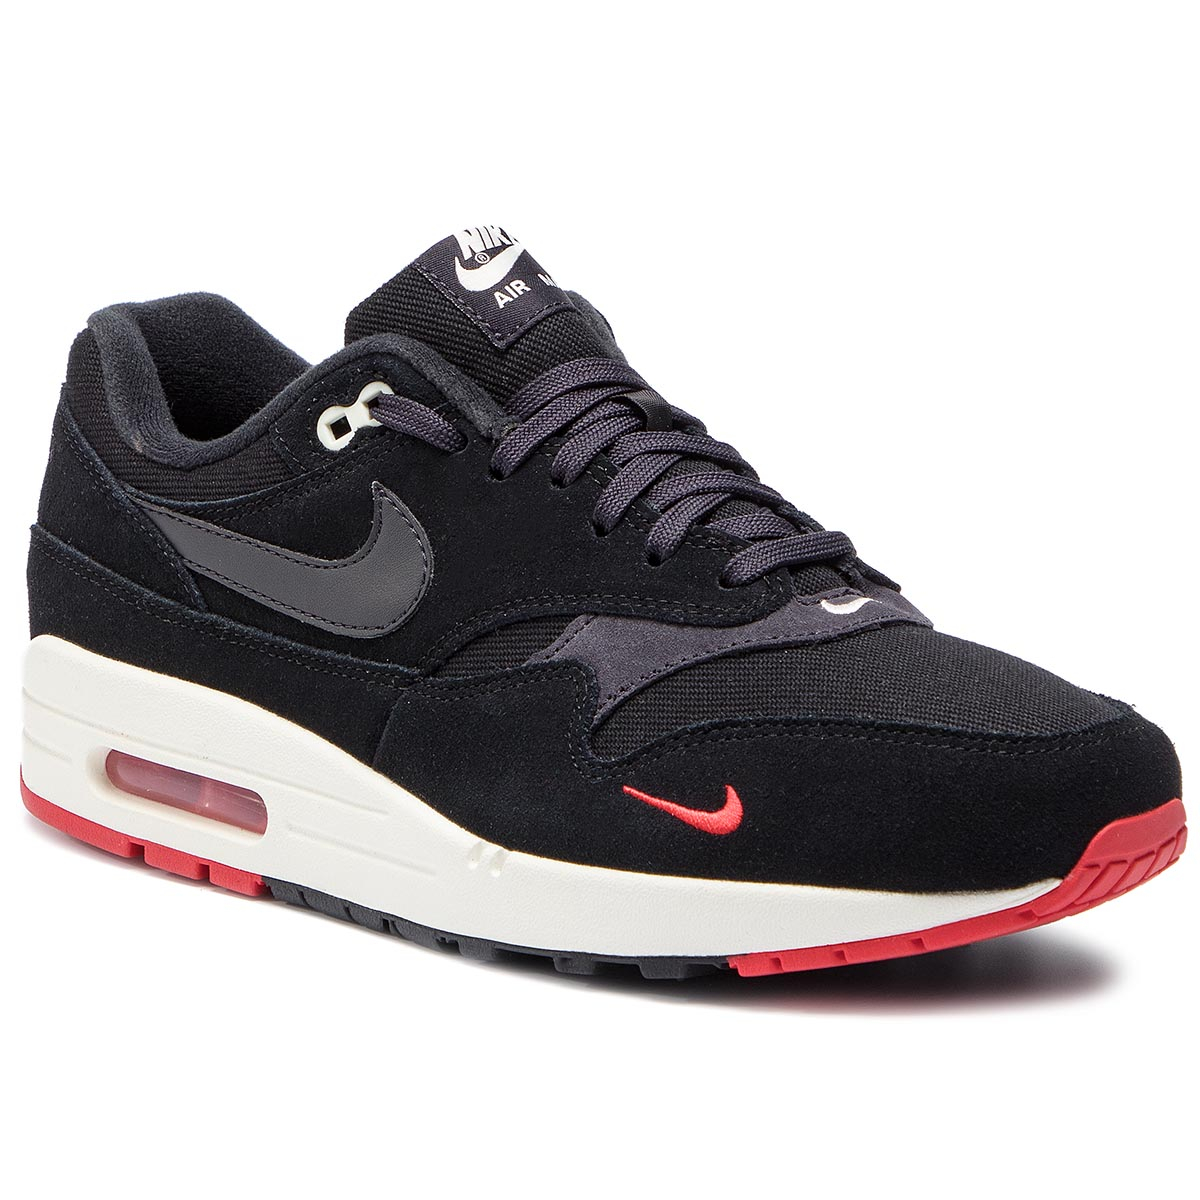 Pantofi NIKE - Air Max 1 Premium 875844 007 Black/Oil Grey/University Red